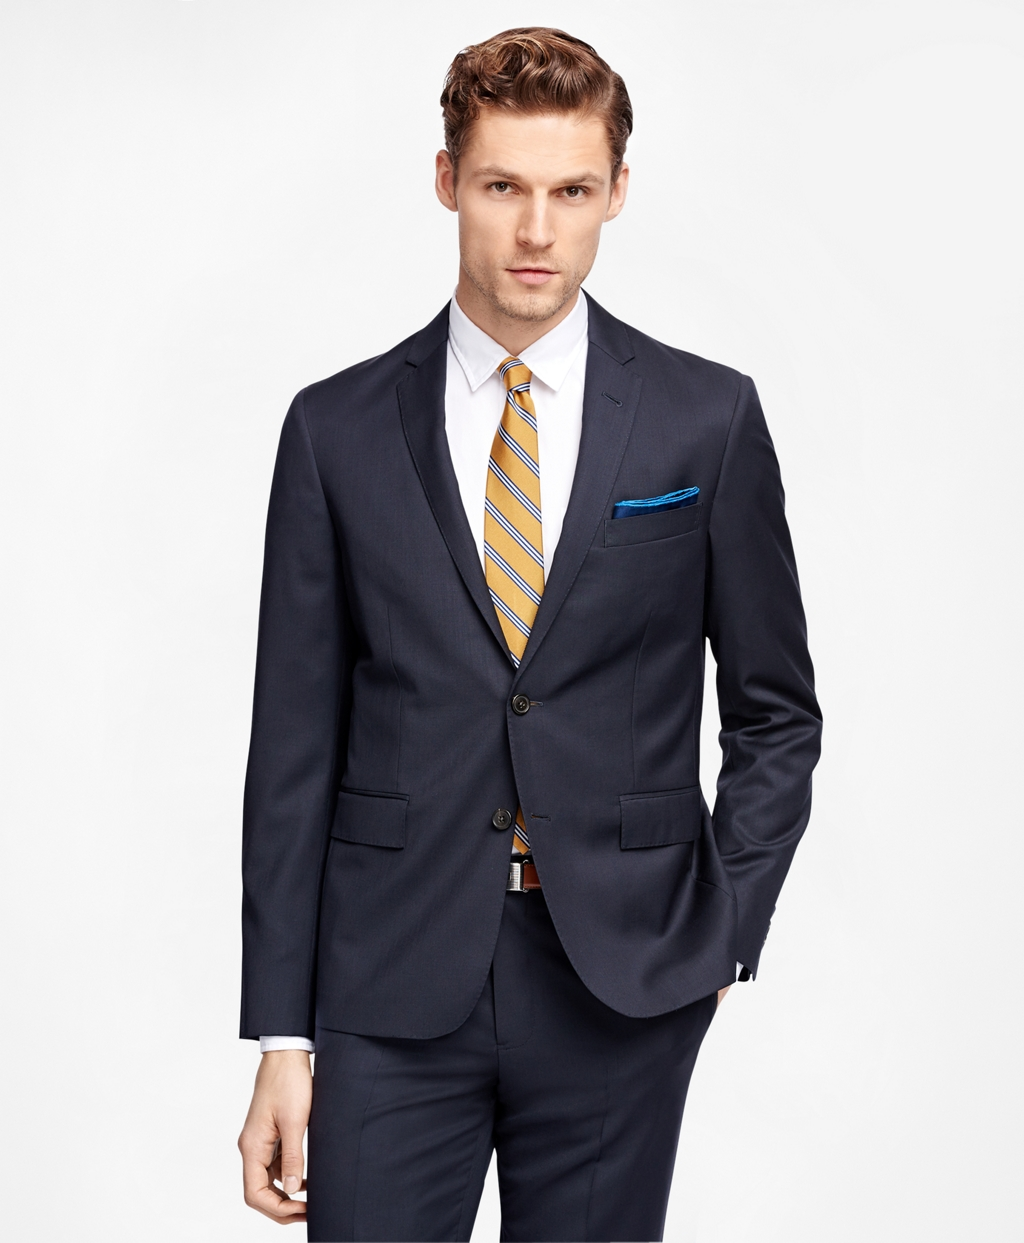 Free shipping on men's suits, suit jackets and sport coats at kumau.ml Shop Nordstrom Men's Shop, Boss and more from the best brands. Totally free shipping and returns.